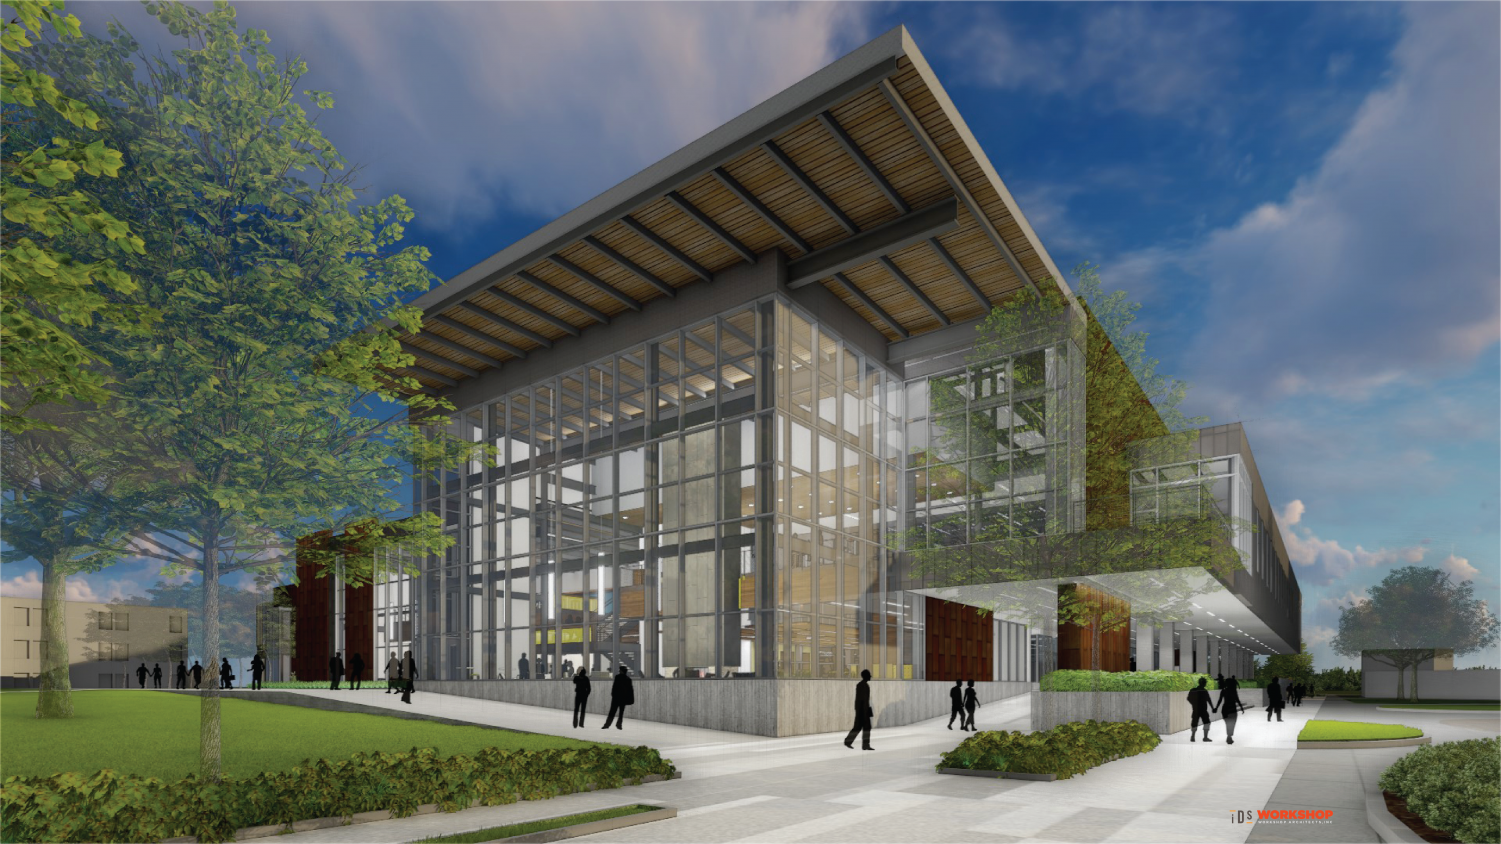 The Oakland Center renovation hopes to better host the growing student body.